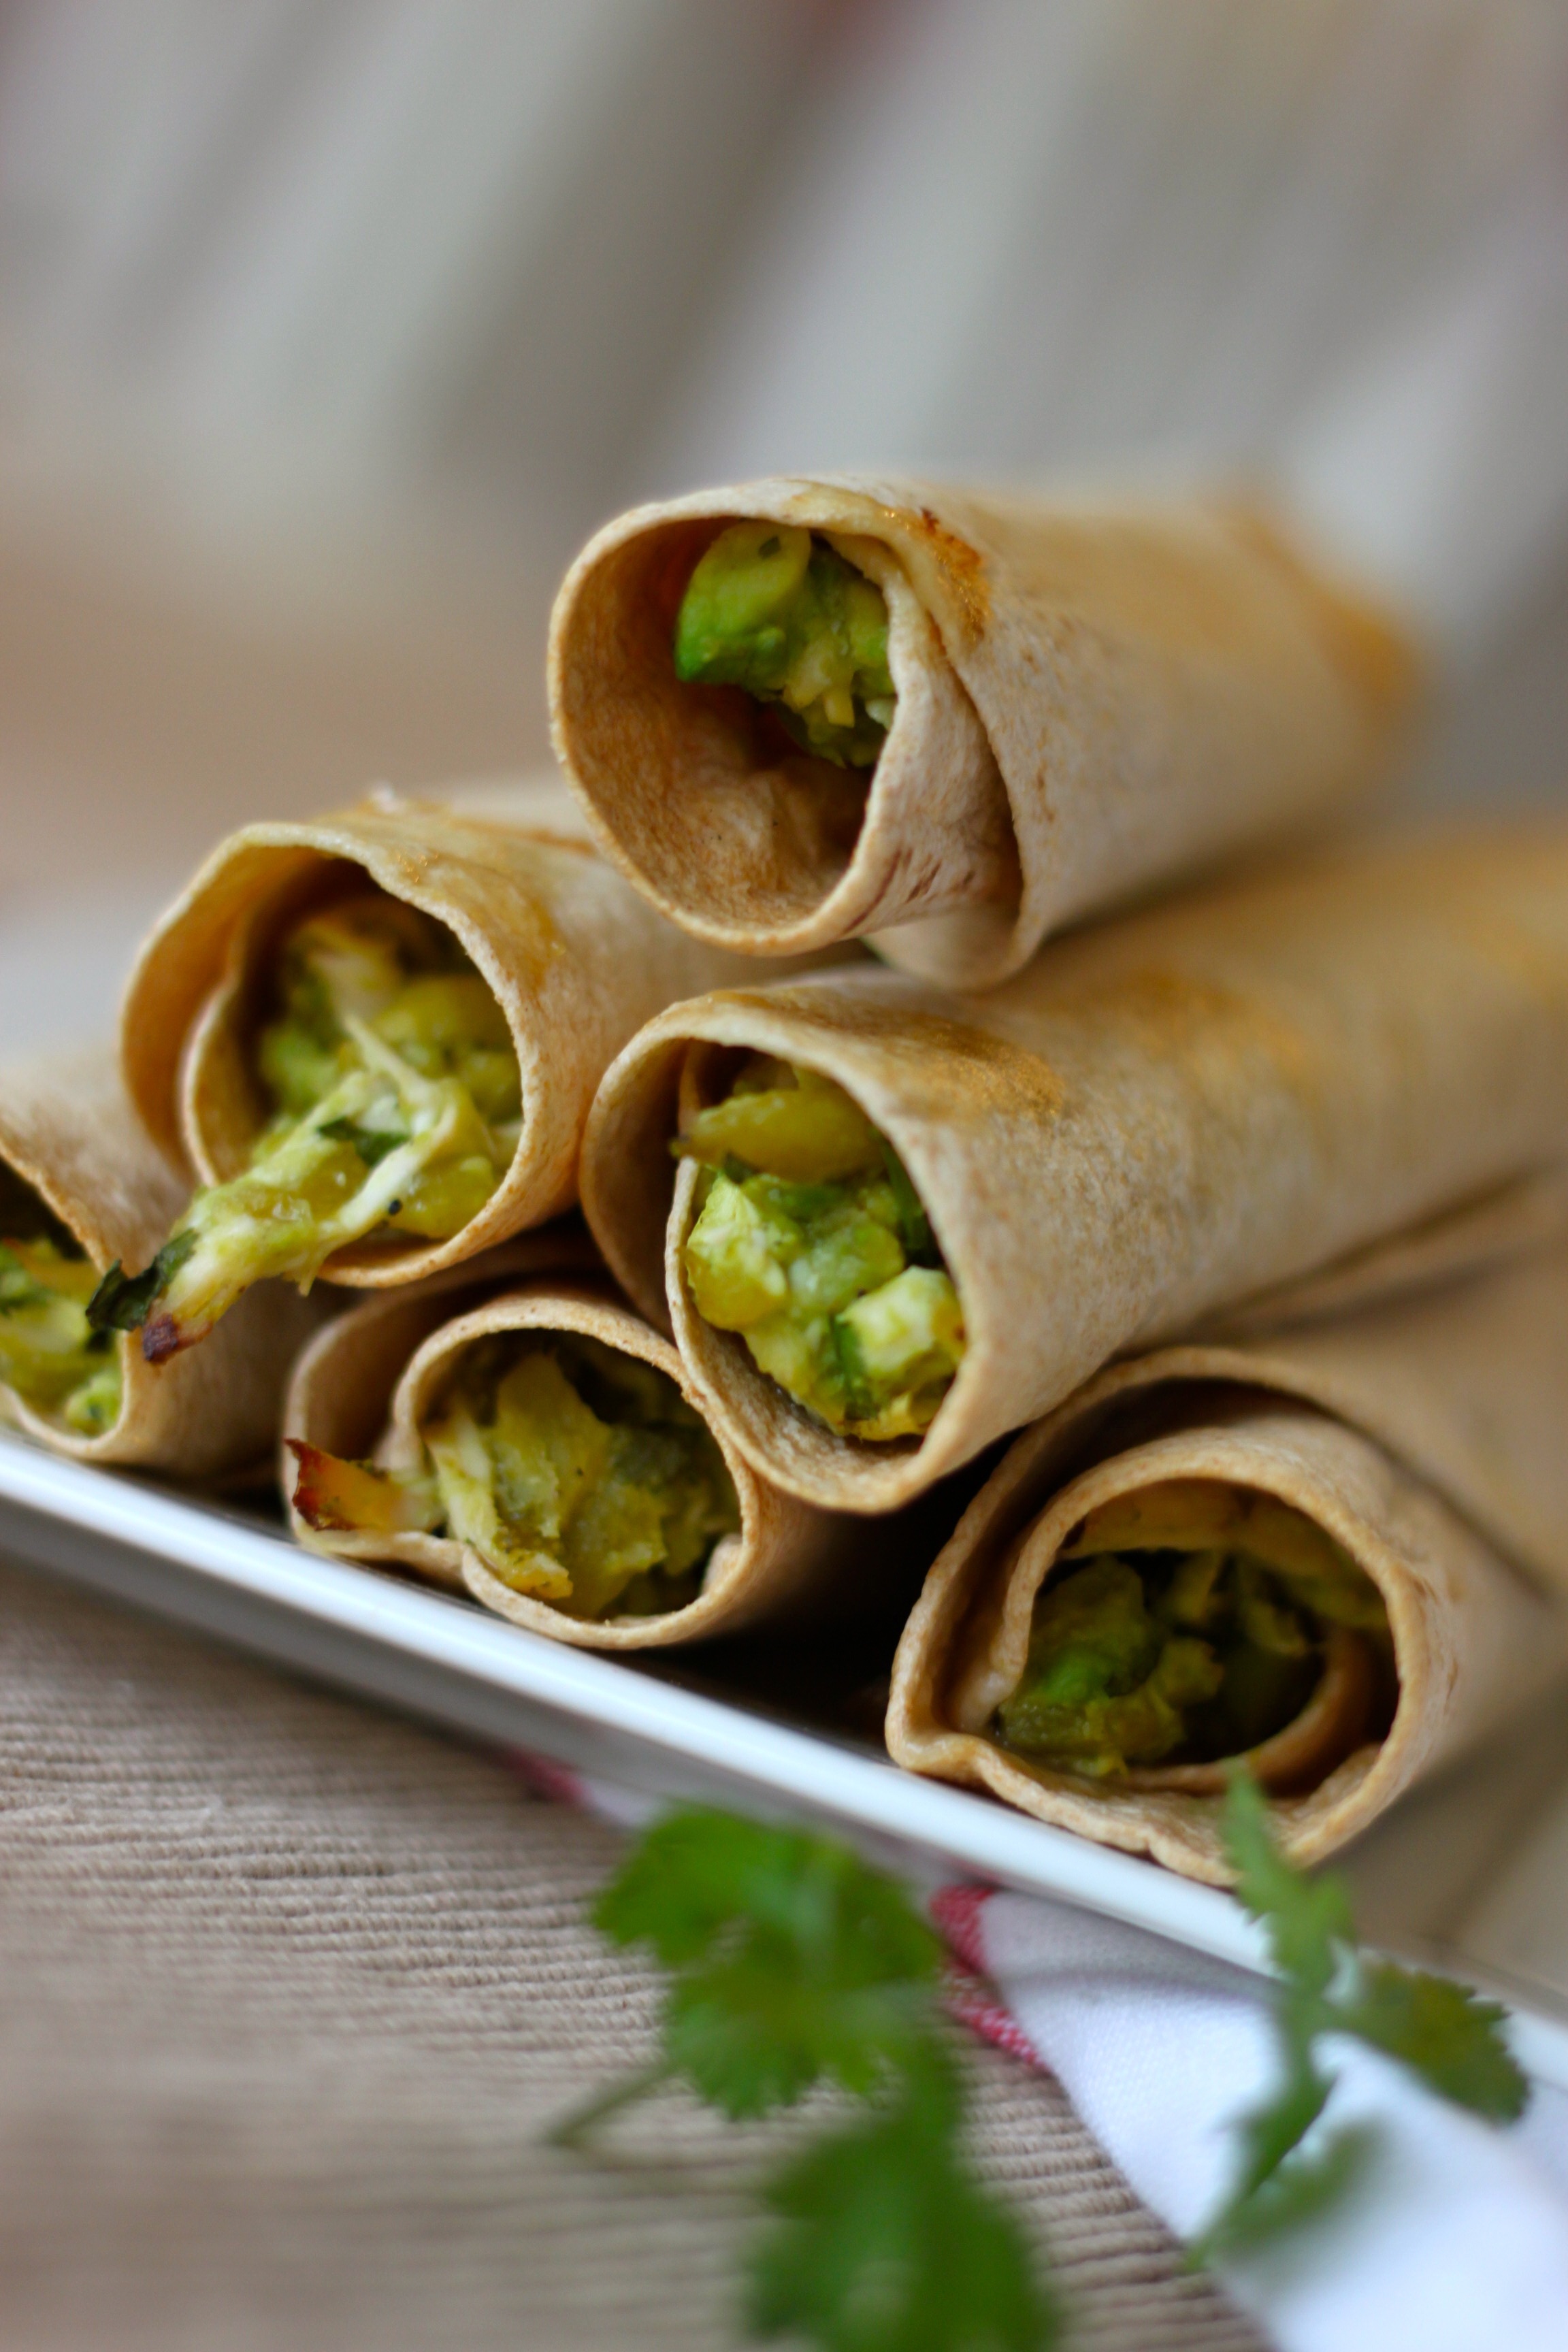 Creamy Avocado Taquitos from The Diva Dish, http://thediva-dish.com